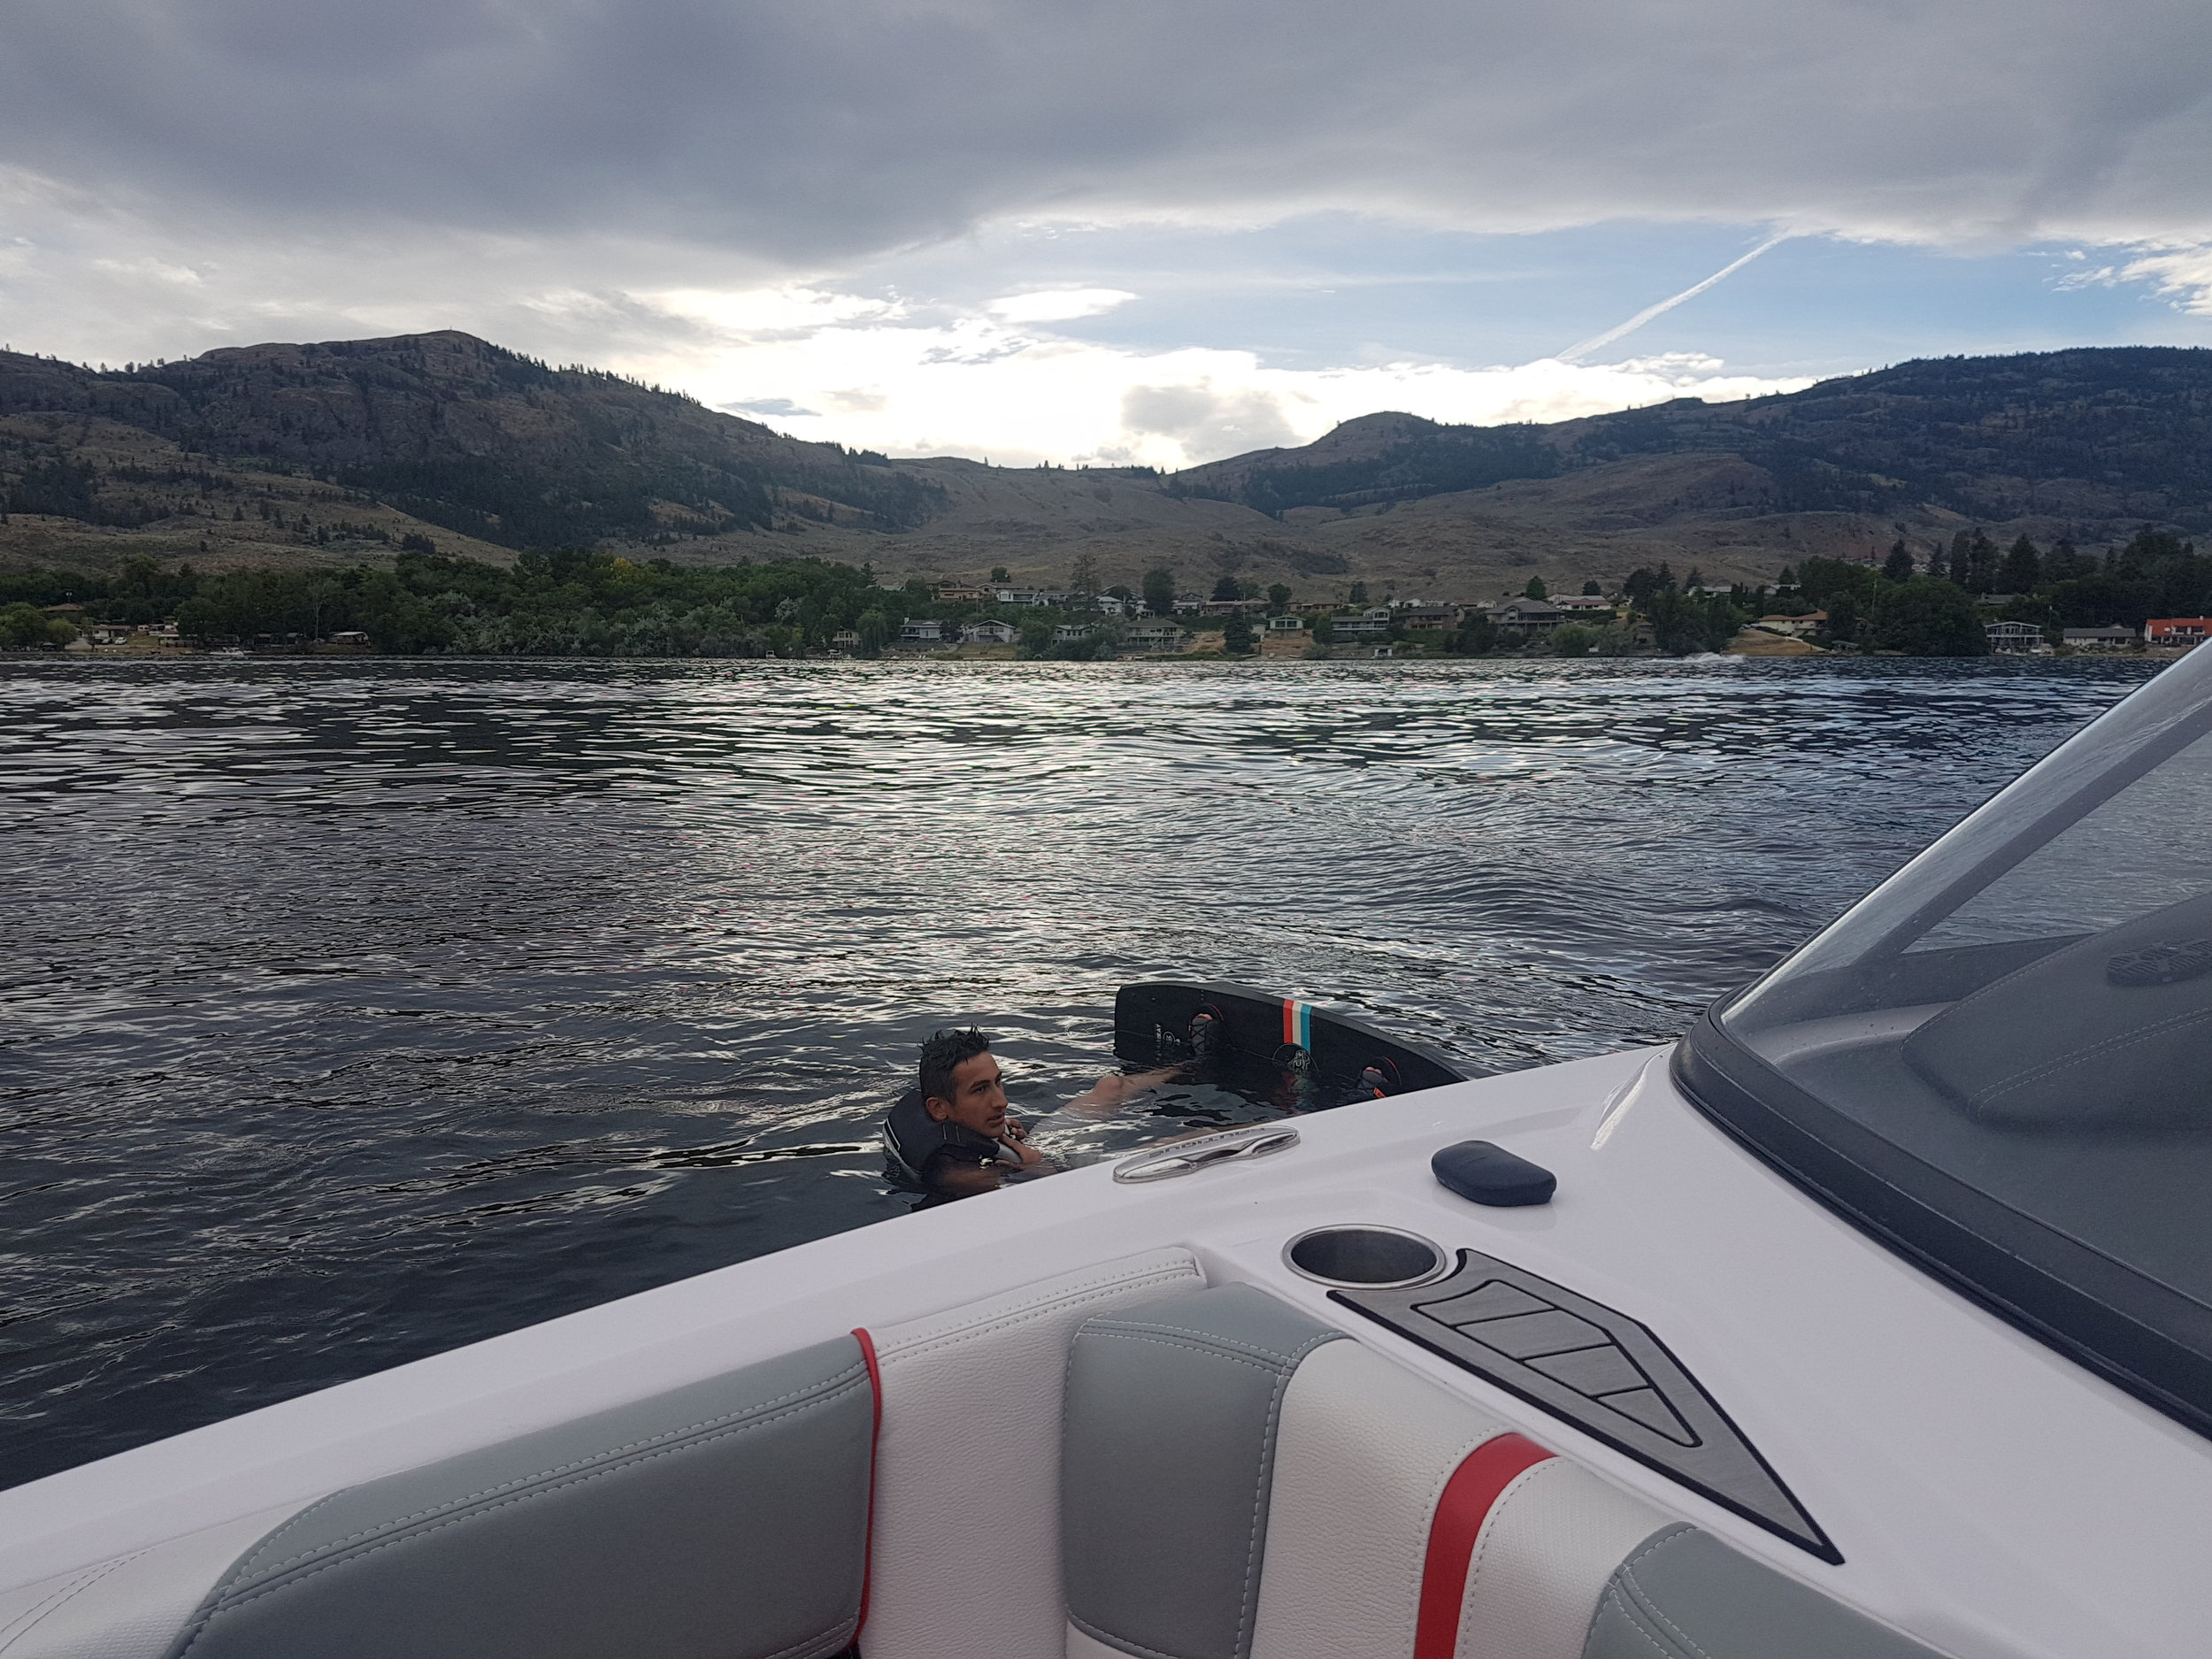 Wakeboard Camp, July 2017, Osoyoos, British Columbia